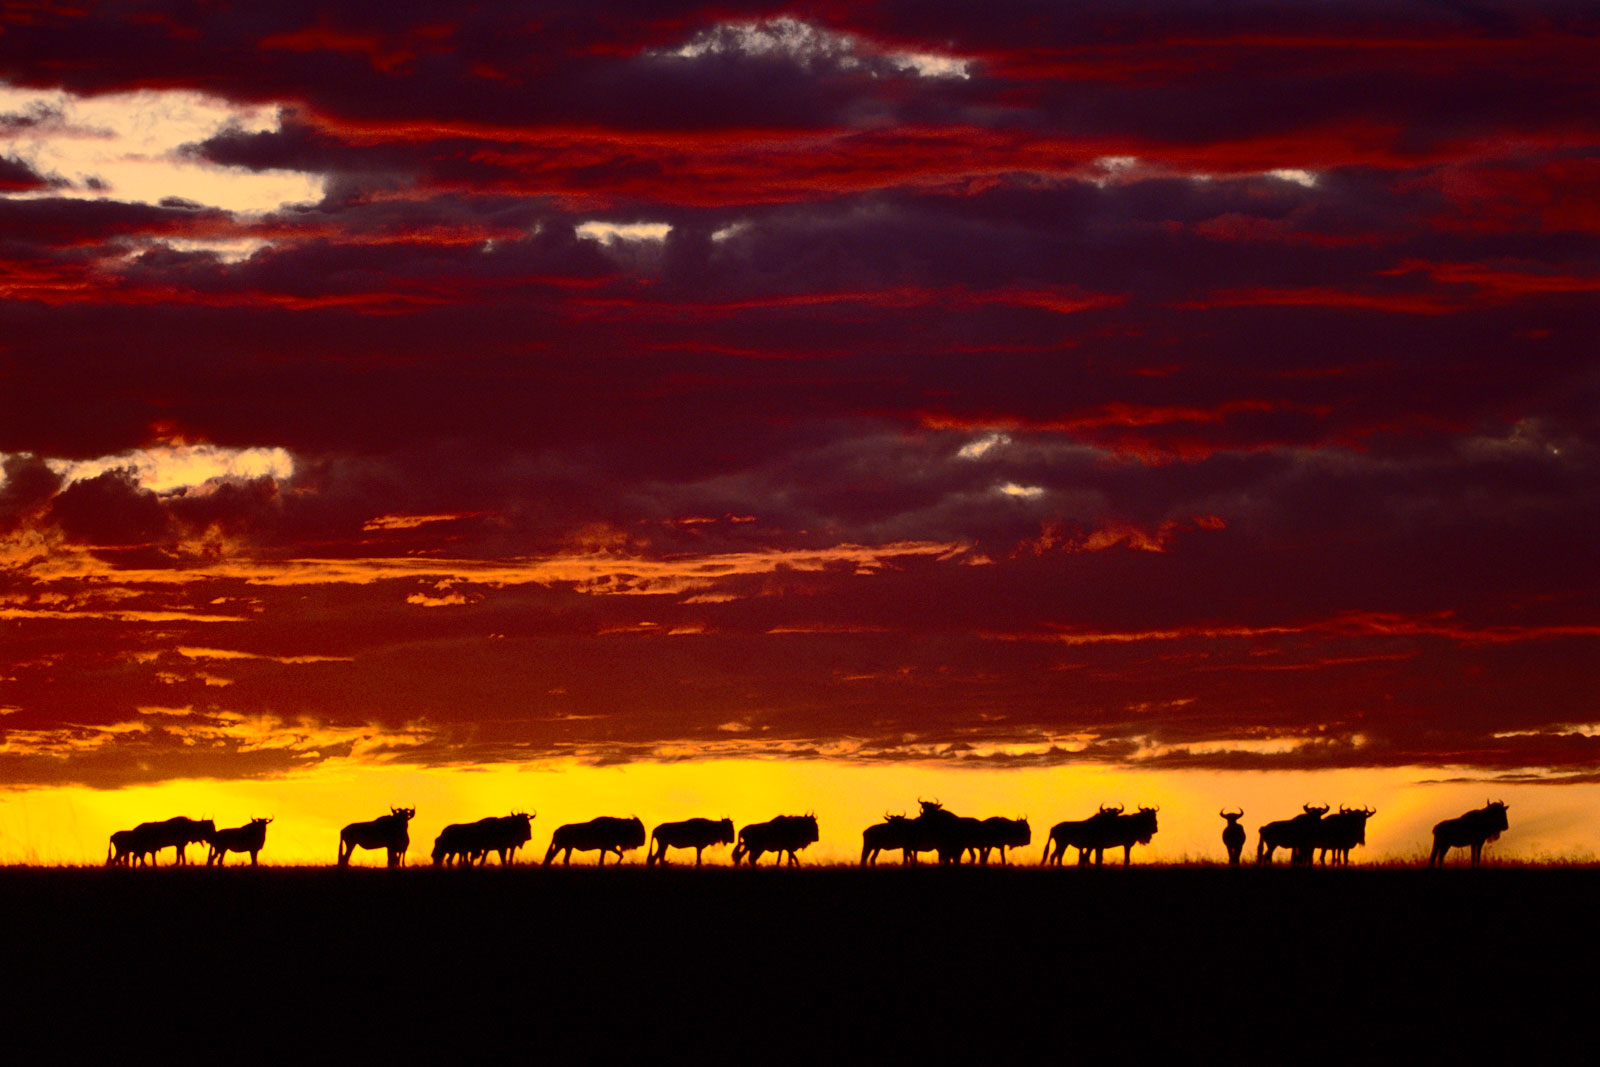 Wildebeests at dawn, Masai Mara Reserve, Kenya